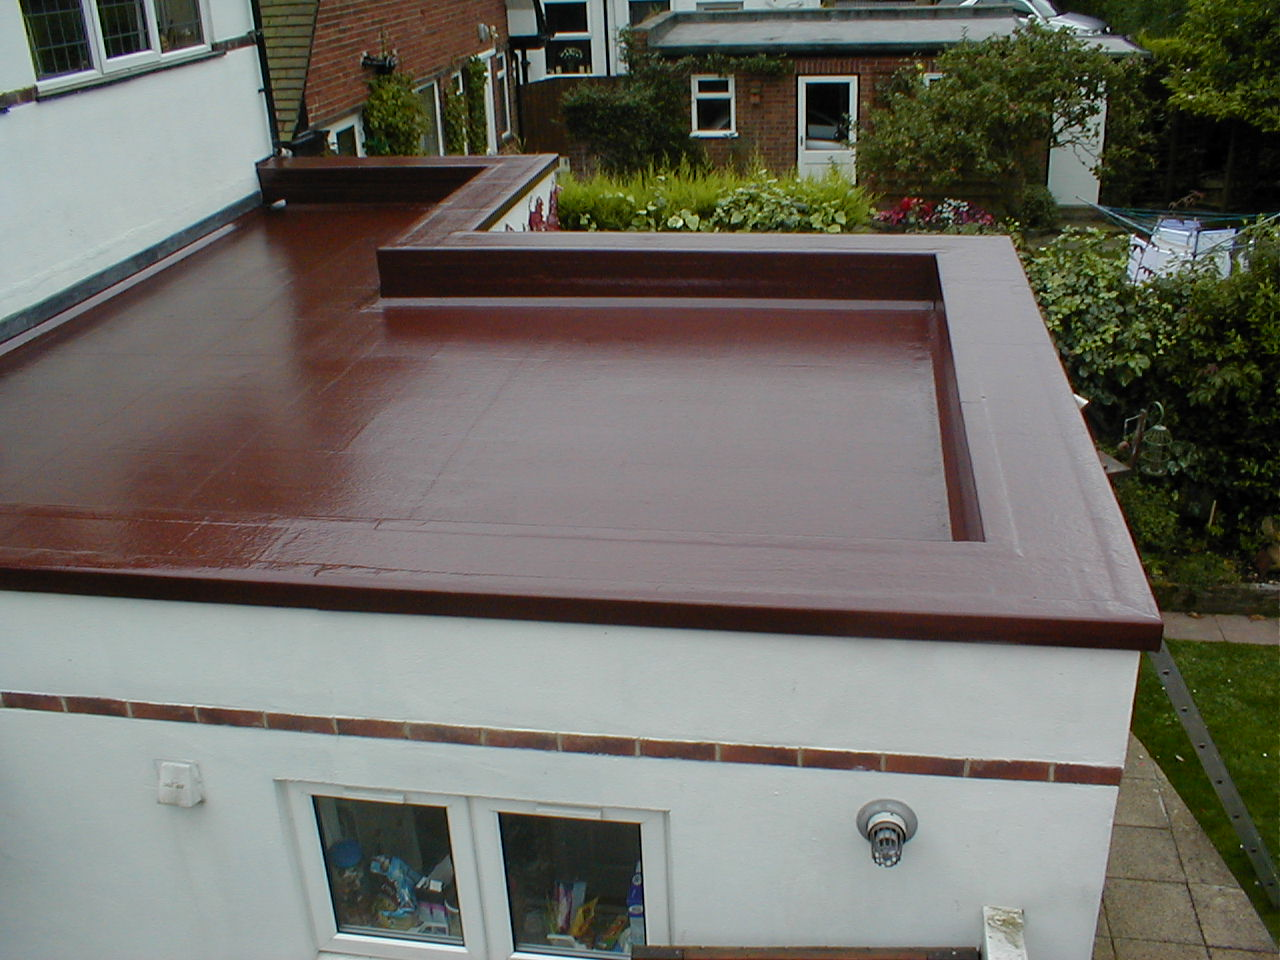 Flat Roofing Roofing Contractors In Ann Arbor A2 Roofing